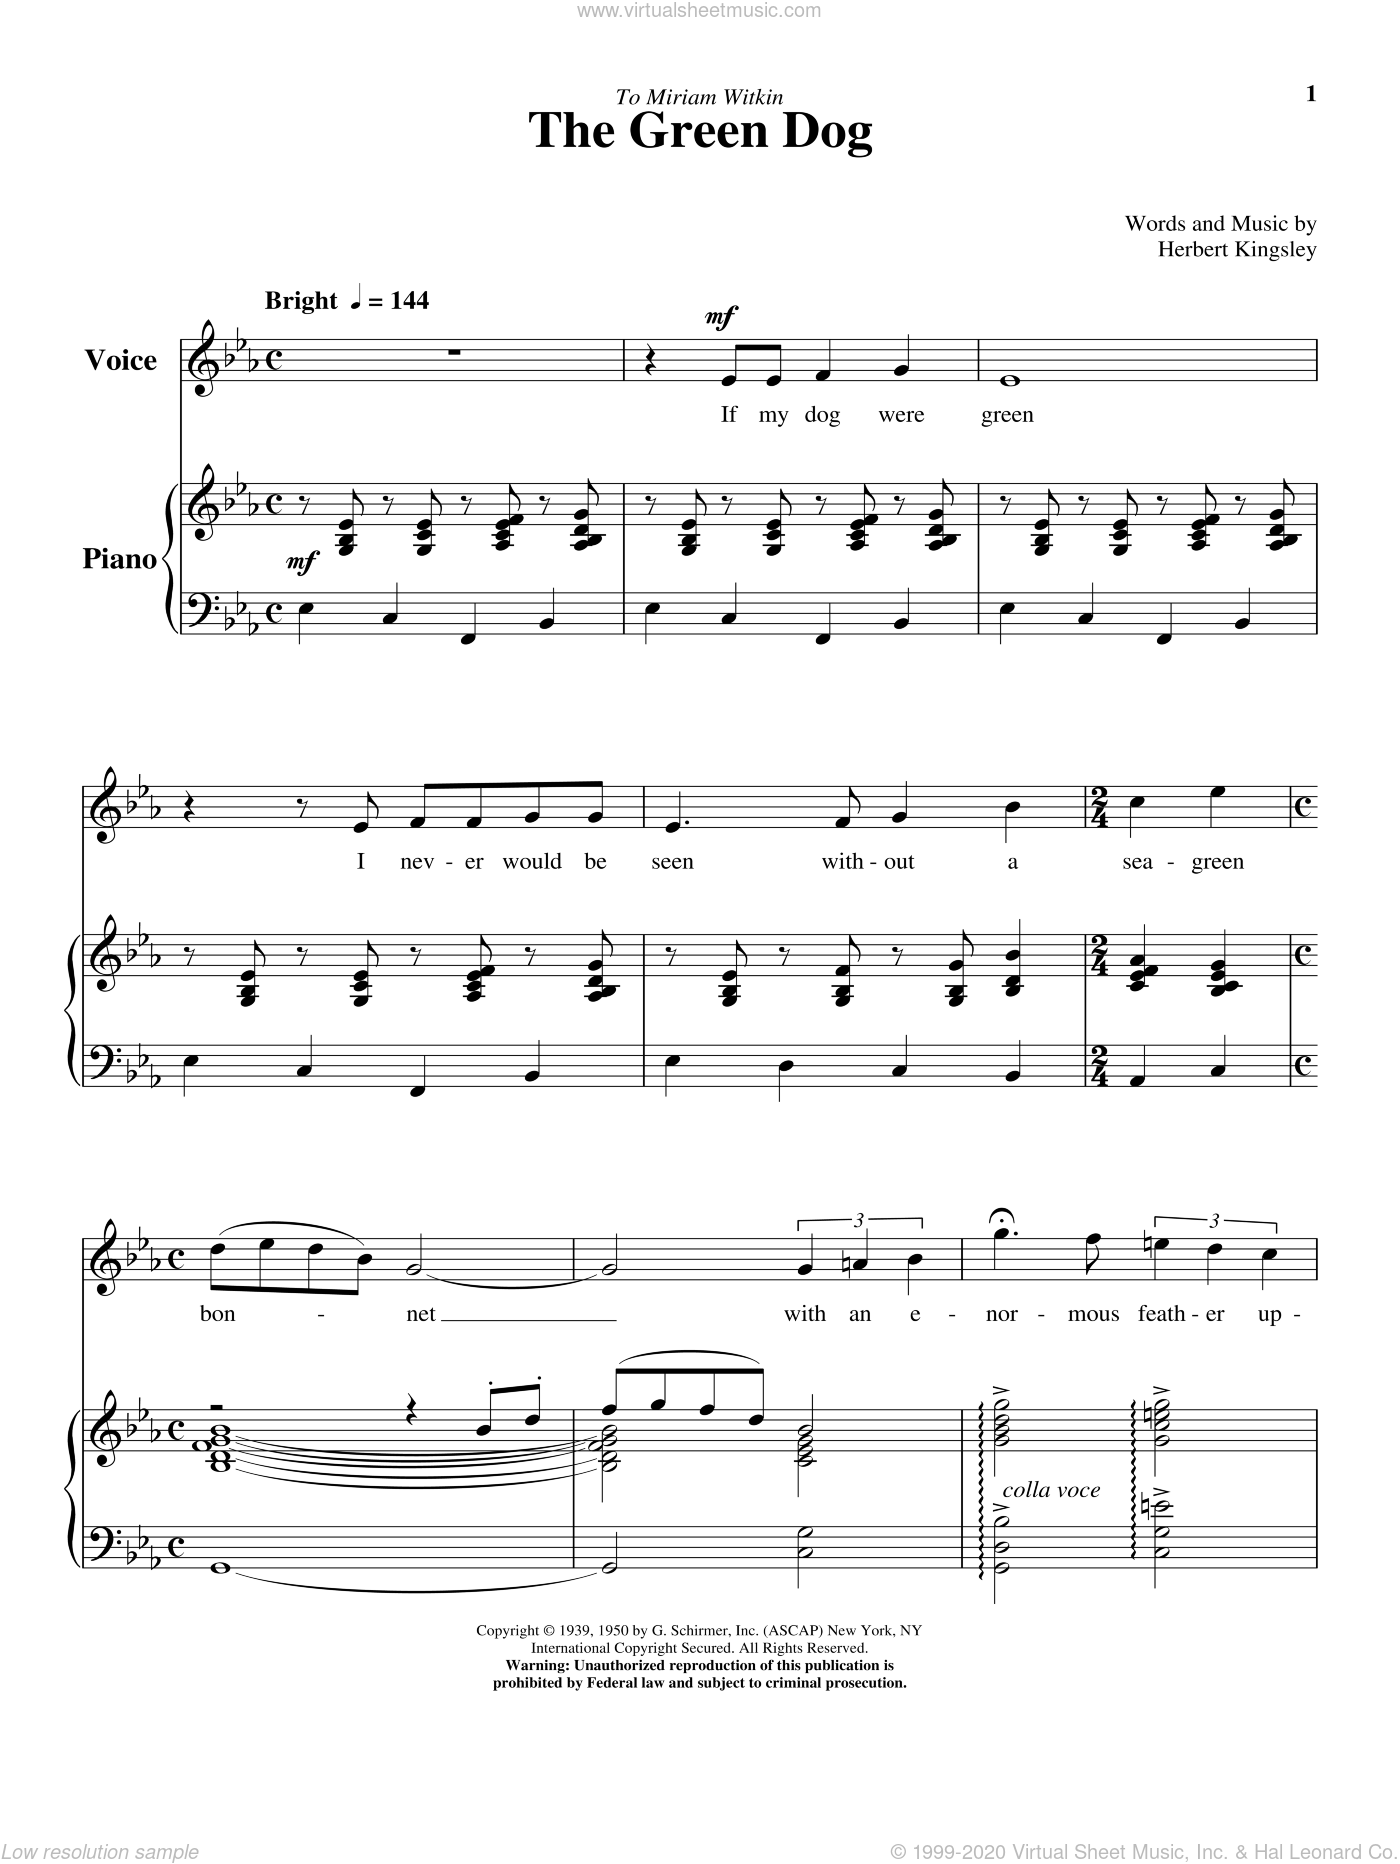 The Green Dog sheet music for voice and piano (High Voice) by Herbert Kingsley, classical score, intermediate skill level